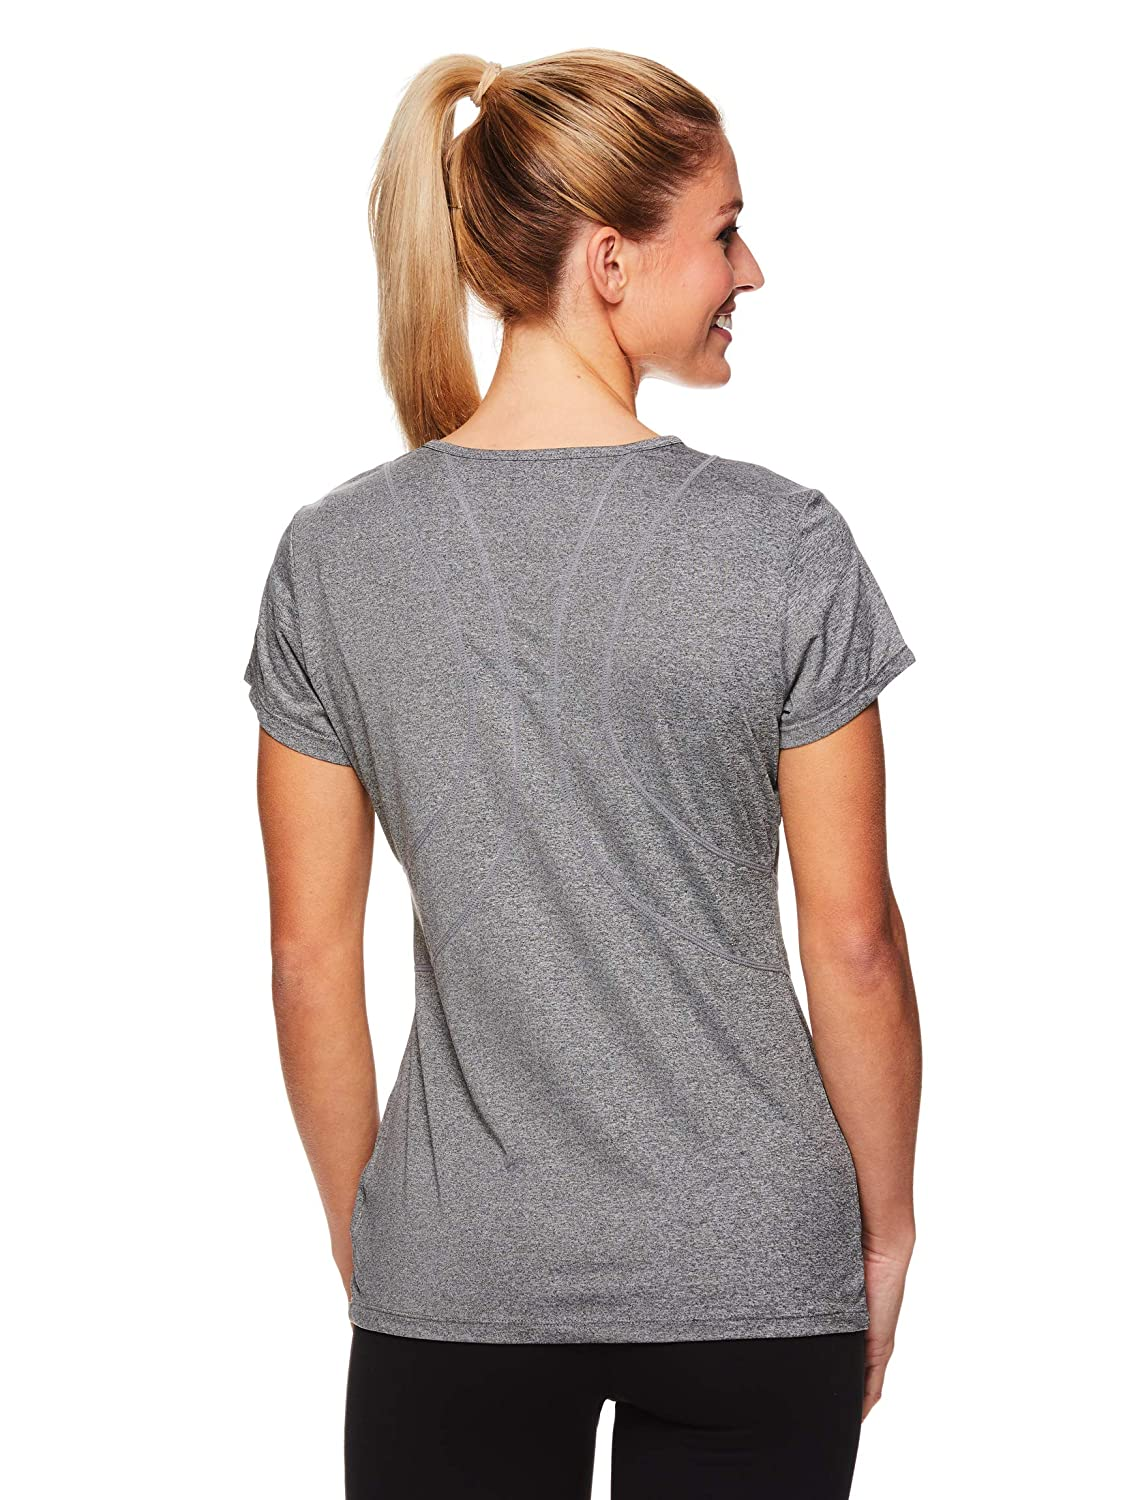 c49c2d4c Amazon.com: Reebok Women's Dynamic Fitted Performance Short Sleeve T-Shirt:  Clothing